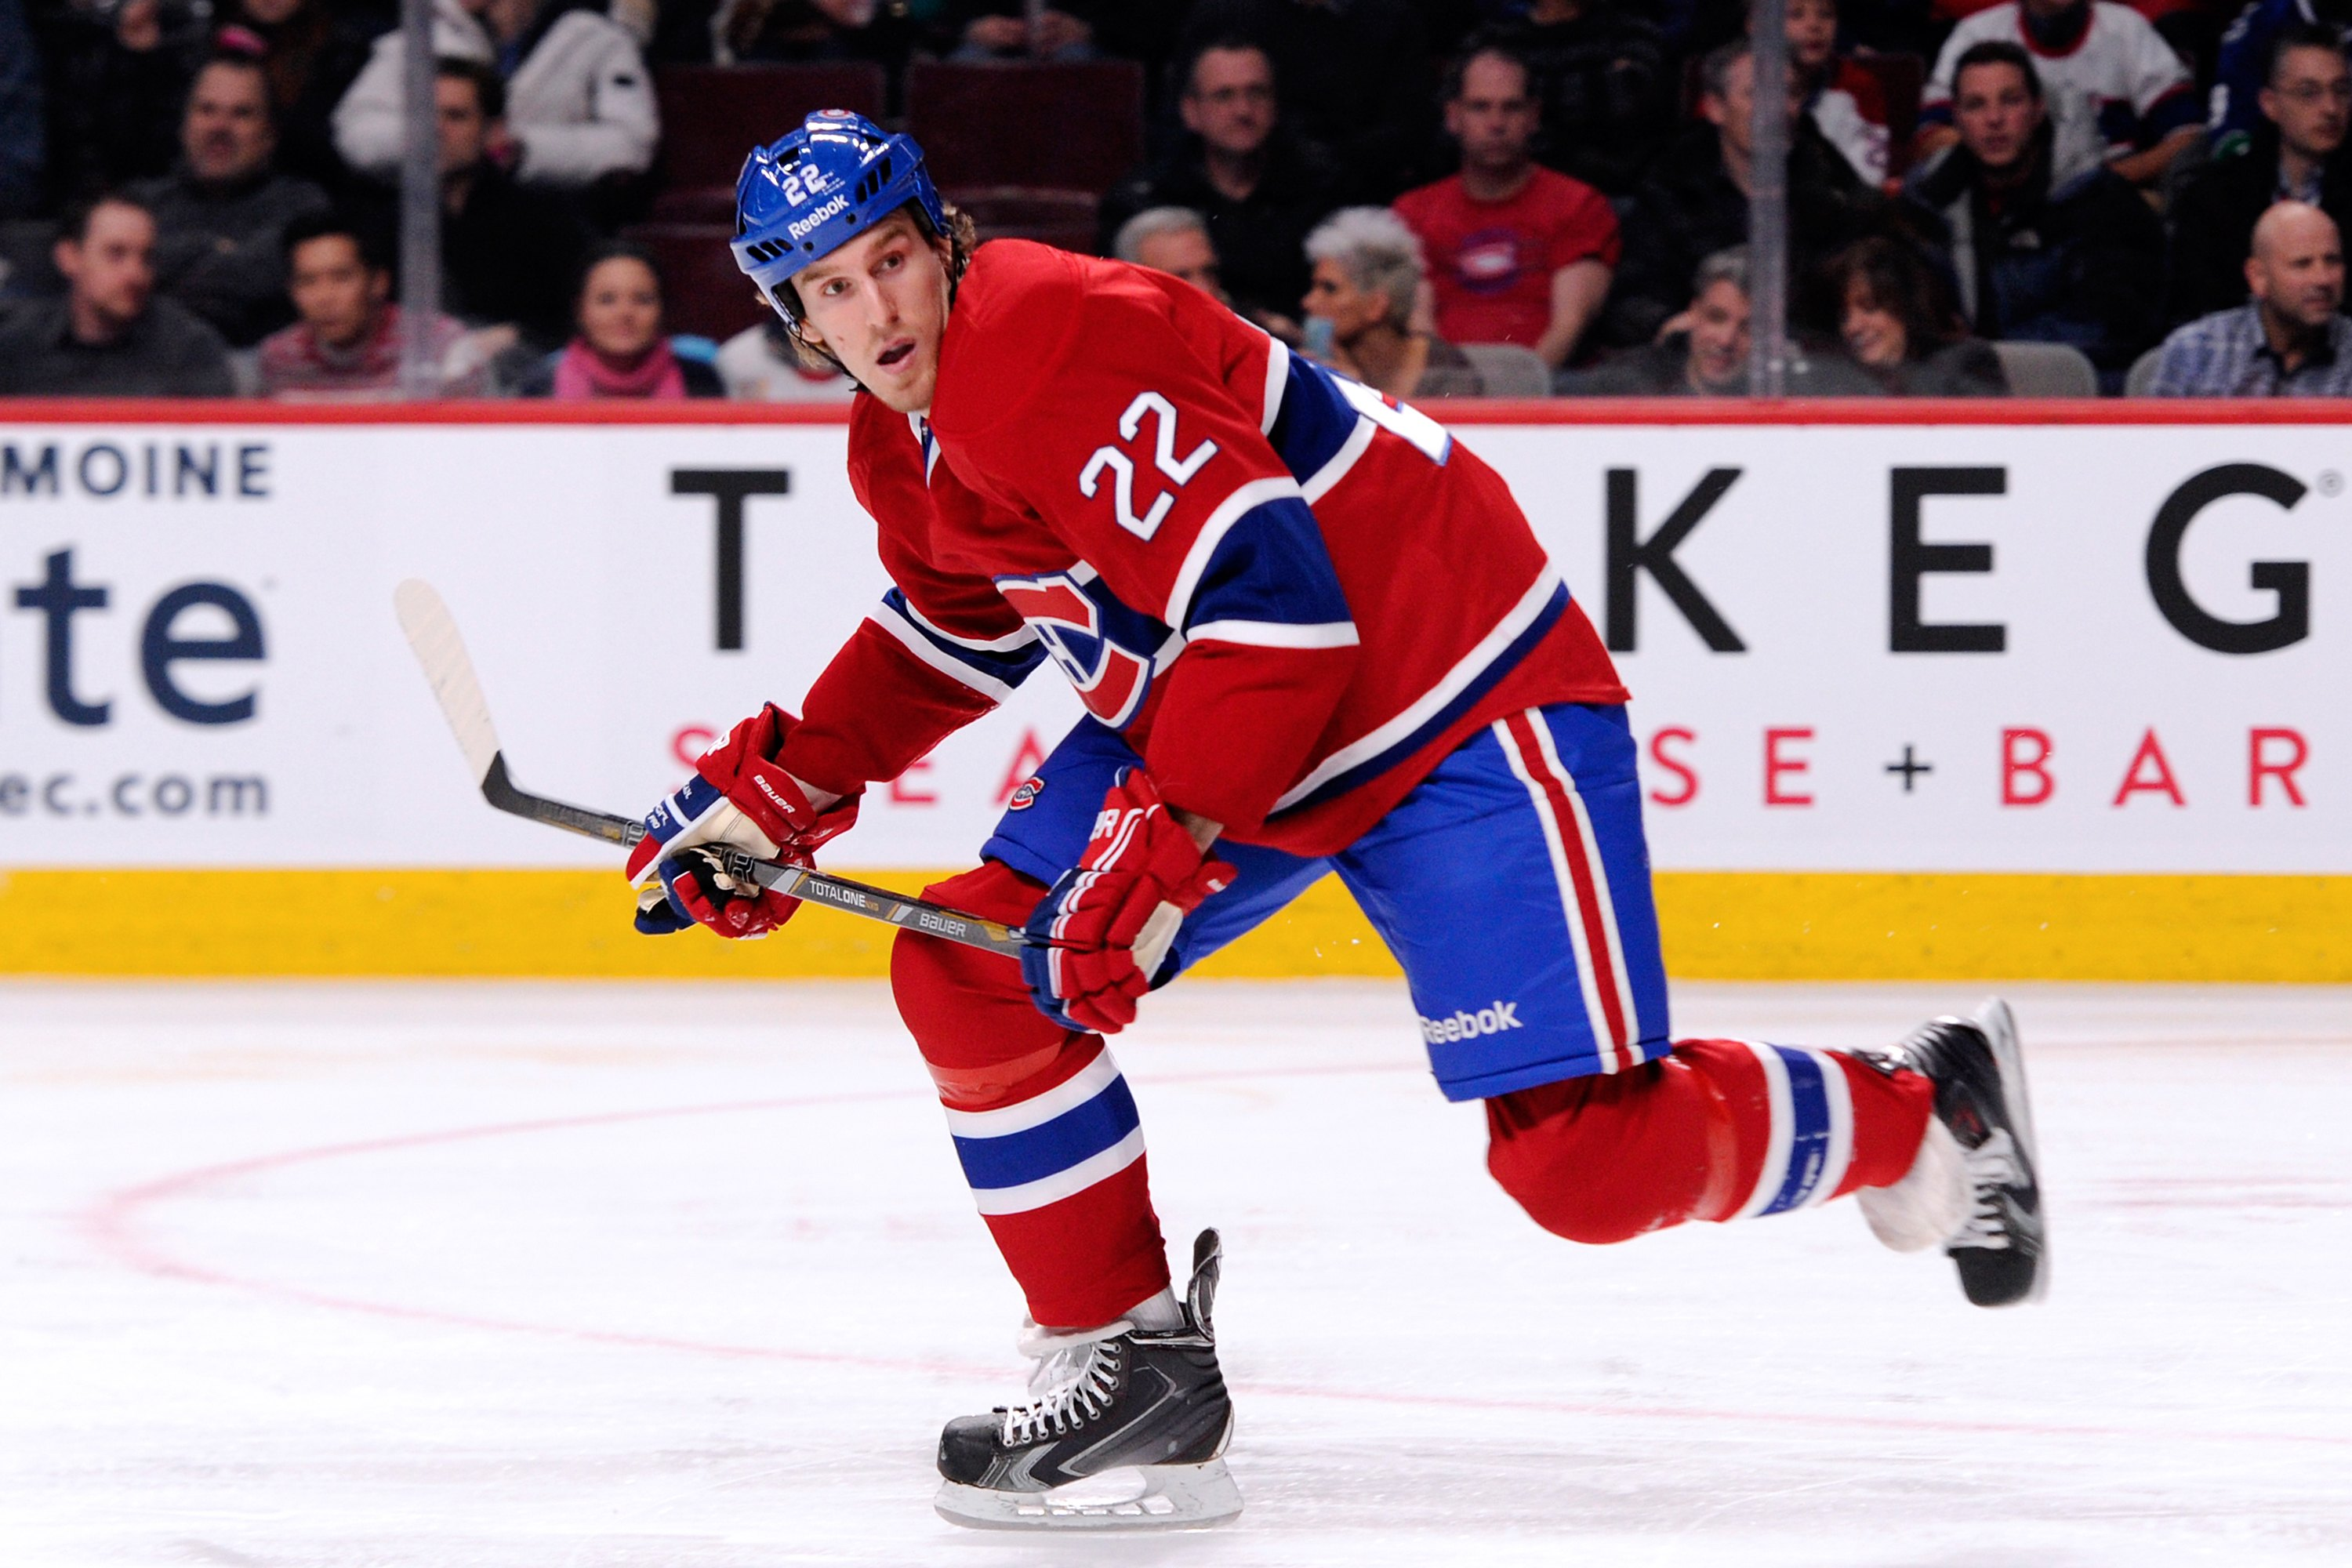 MONTREAL, QC - FEBRUARY 6:  Dale Weise #22 of the Montreal Canadiens skates during the NHL game against the Vancouver Canucks at the Bell Centre on February 6, 2014 in Montreal, Quebec, Canada.  The Canadiens defeated the Canucks 5-2.  (Photo by Richard Wolowicz/Getty Images)